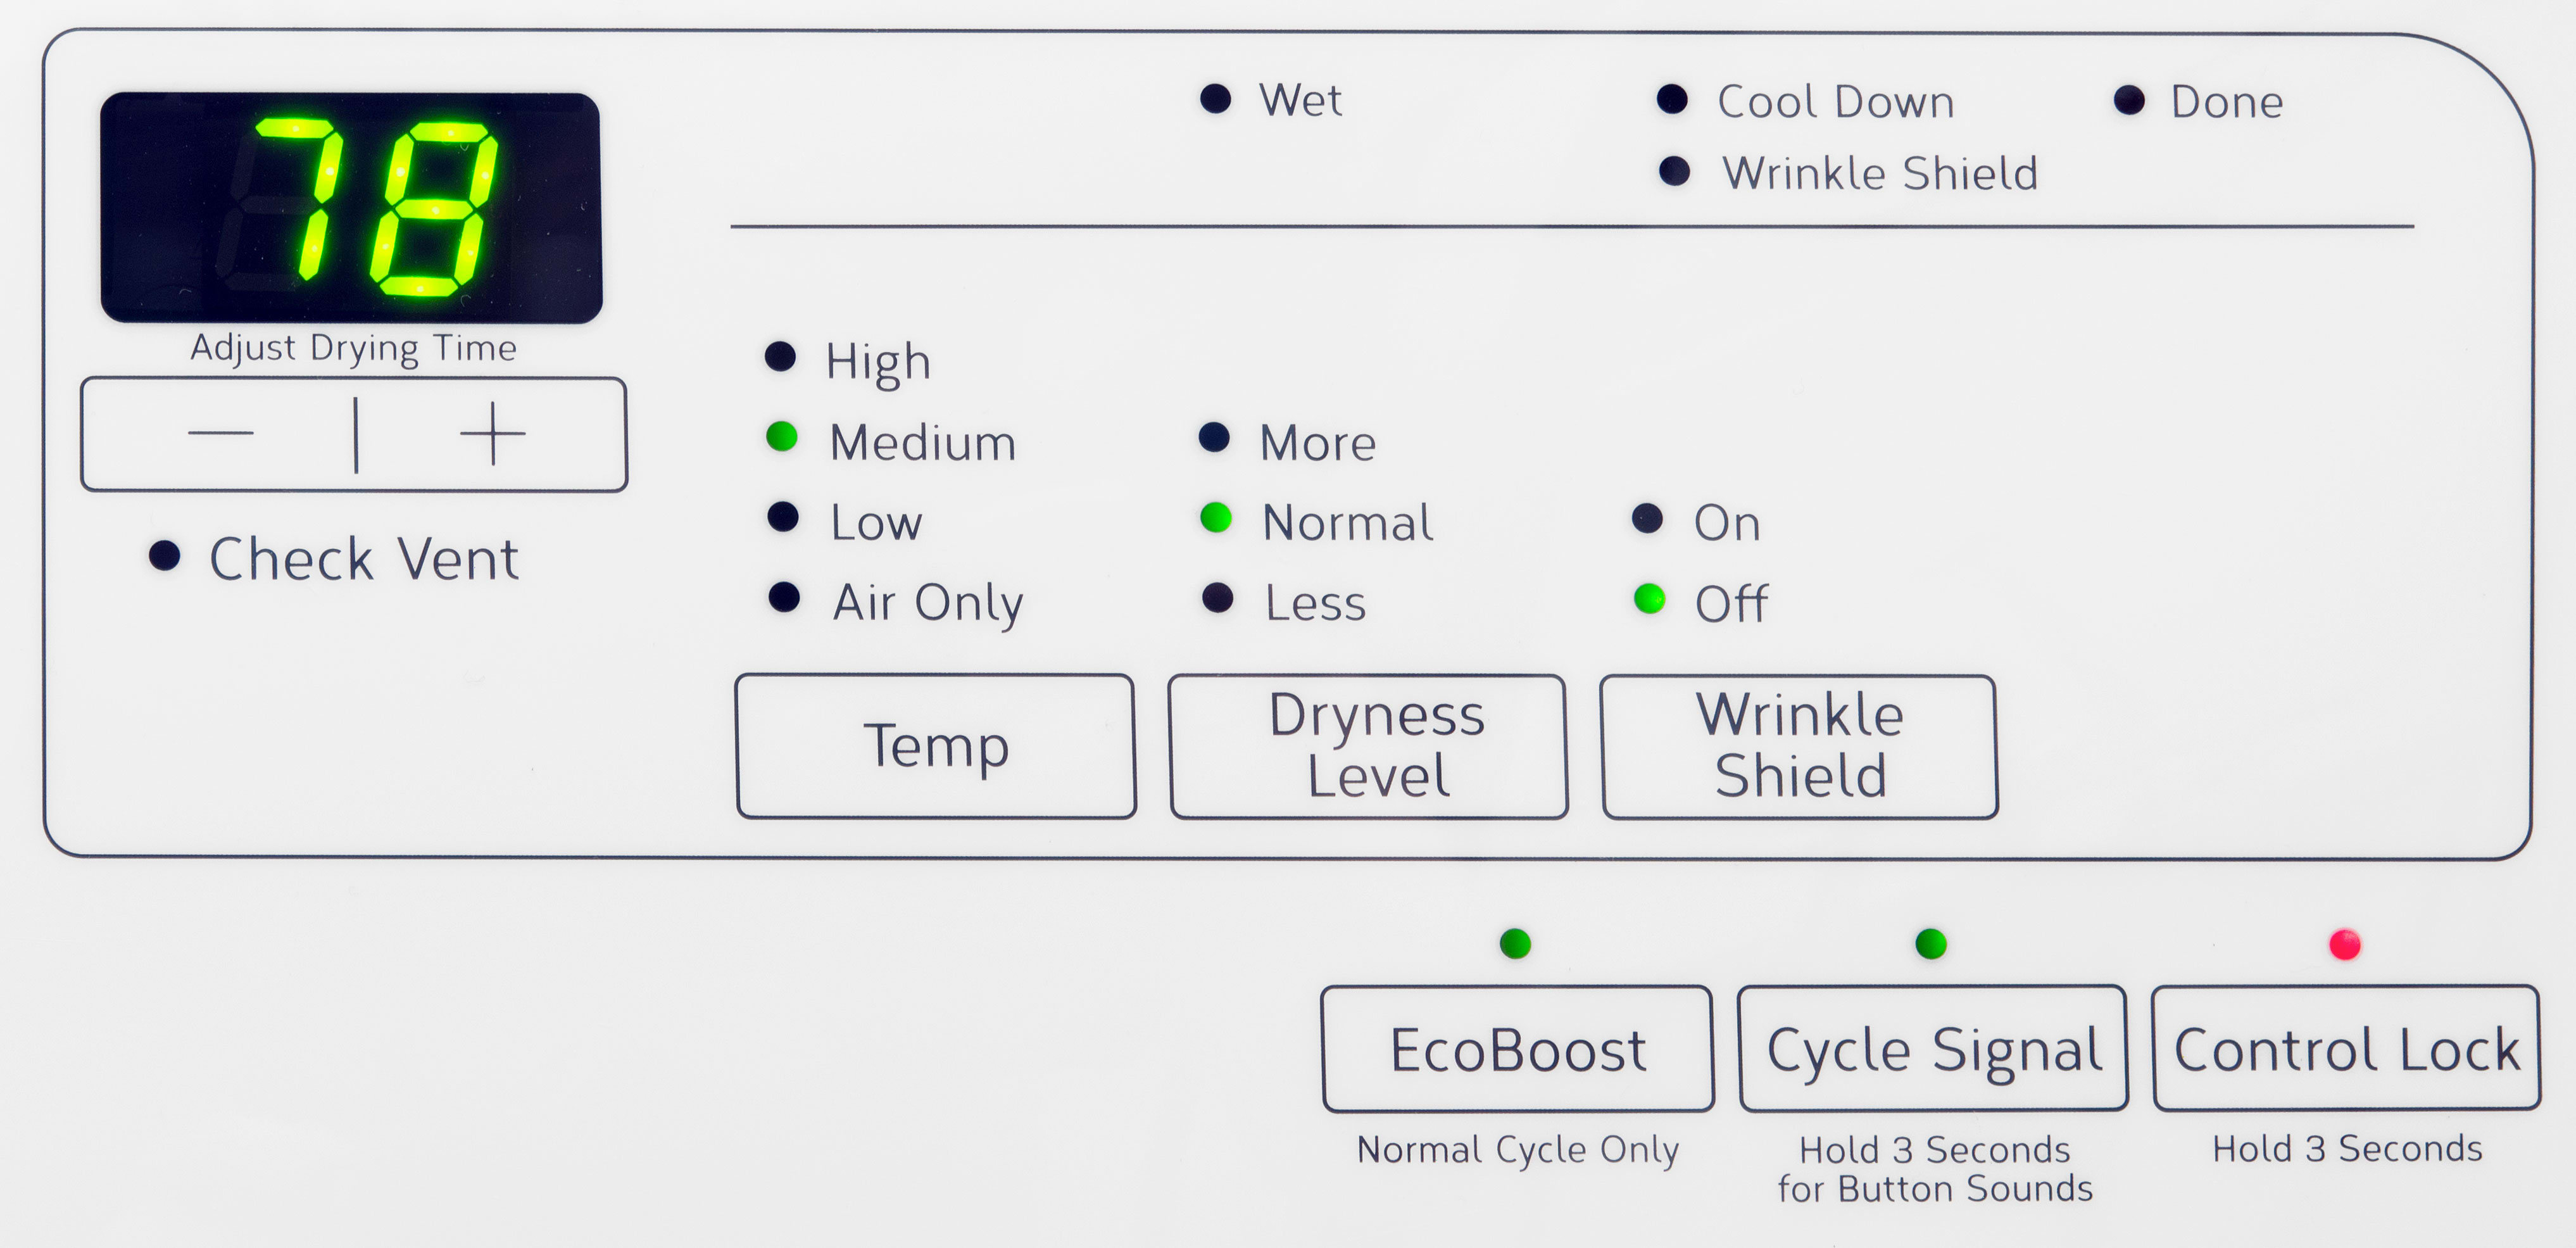 A limited number of features and customizable options keeps doing laundry pretty simple—which could be good or bad, depending on how you like to do things.